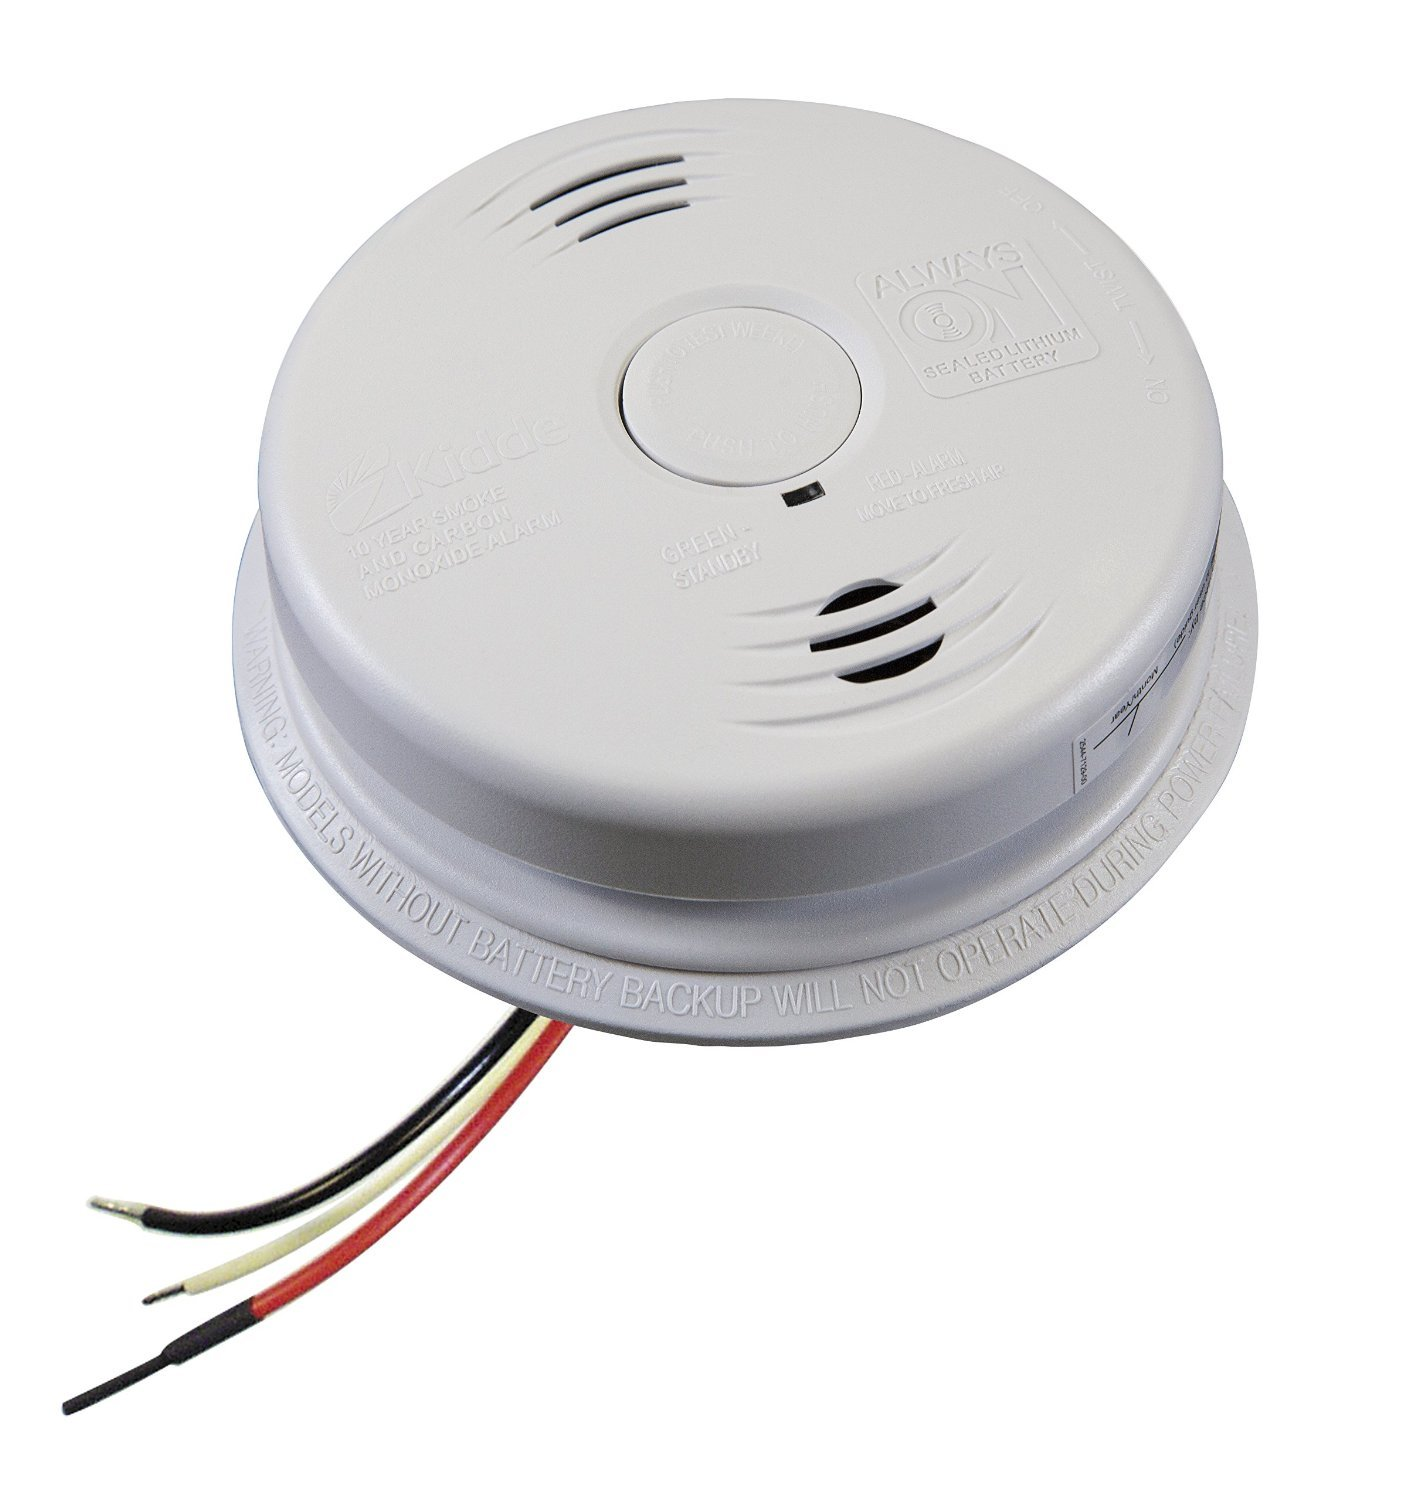 71cMtdEPxfL._SL1500_ kidde i12010sco smoke and carbon monoxide alarm amazon com  at edmiracle.co